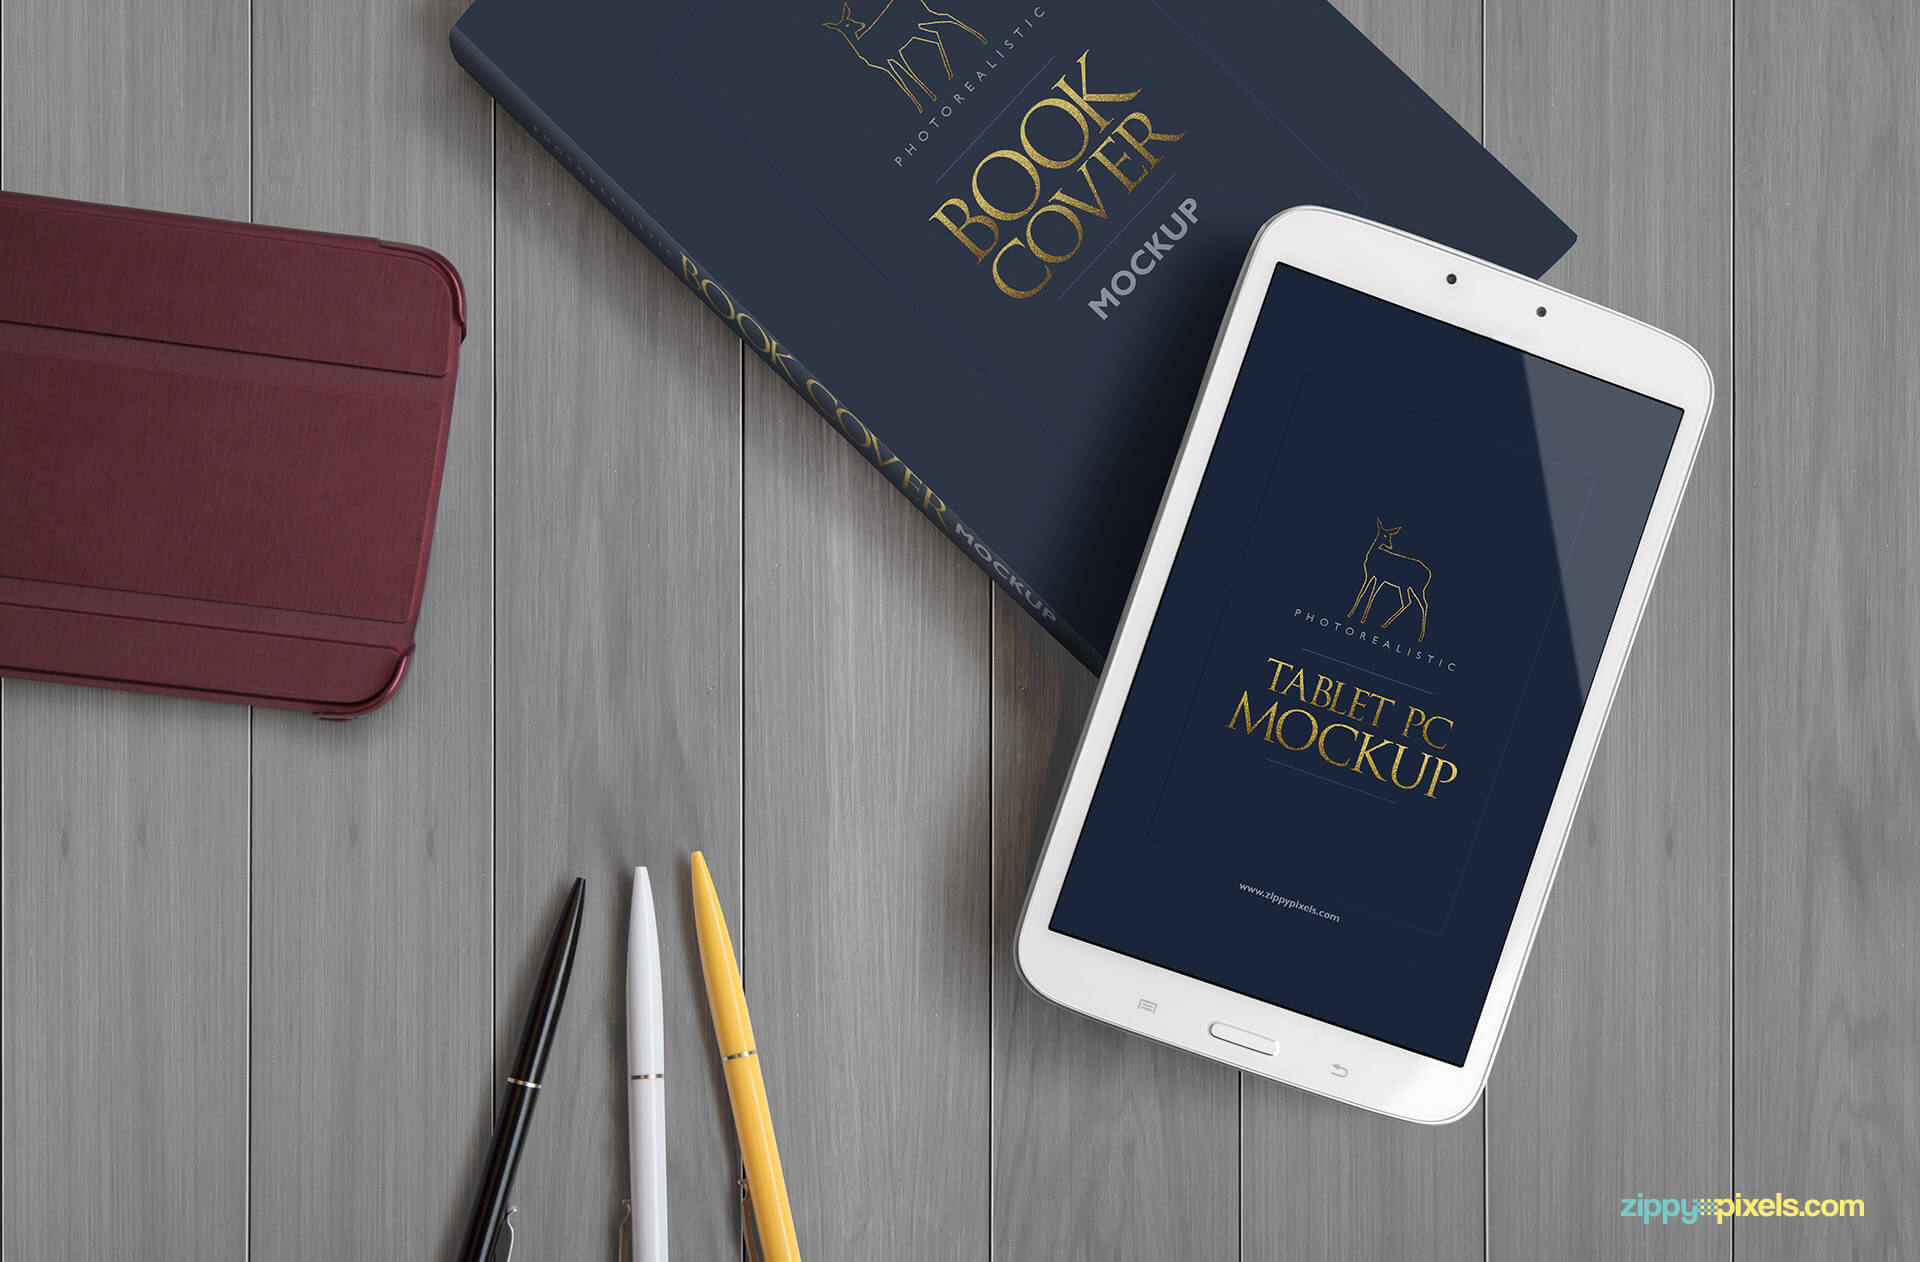 Photorealistic book Mockup - top down view of hardcover book, tablet, tablet cover and pens